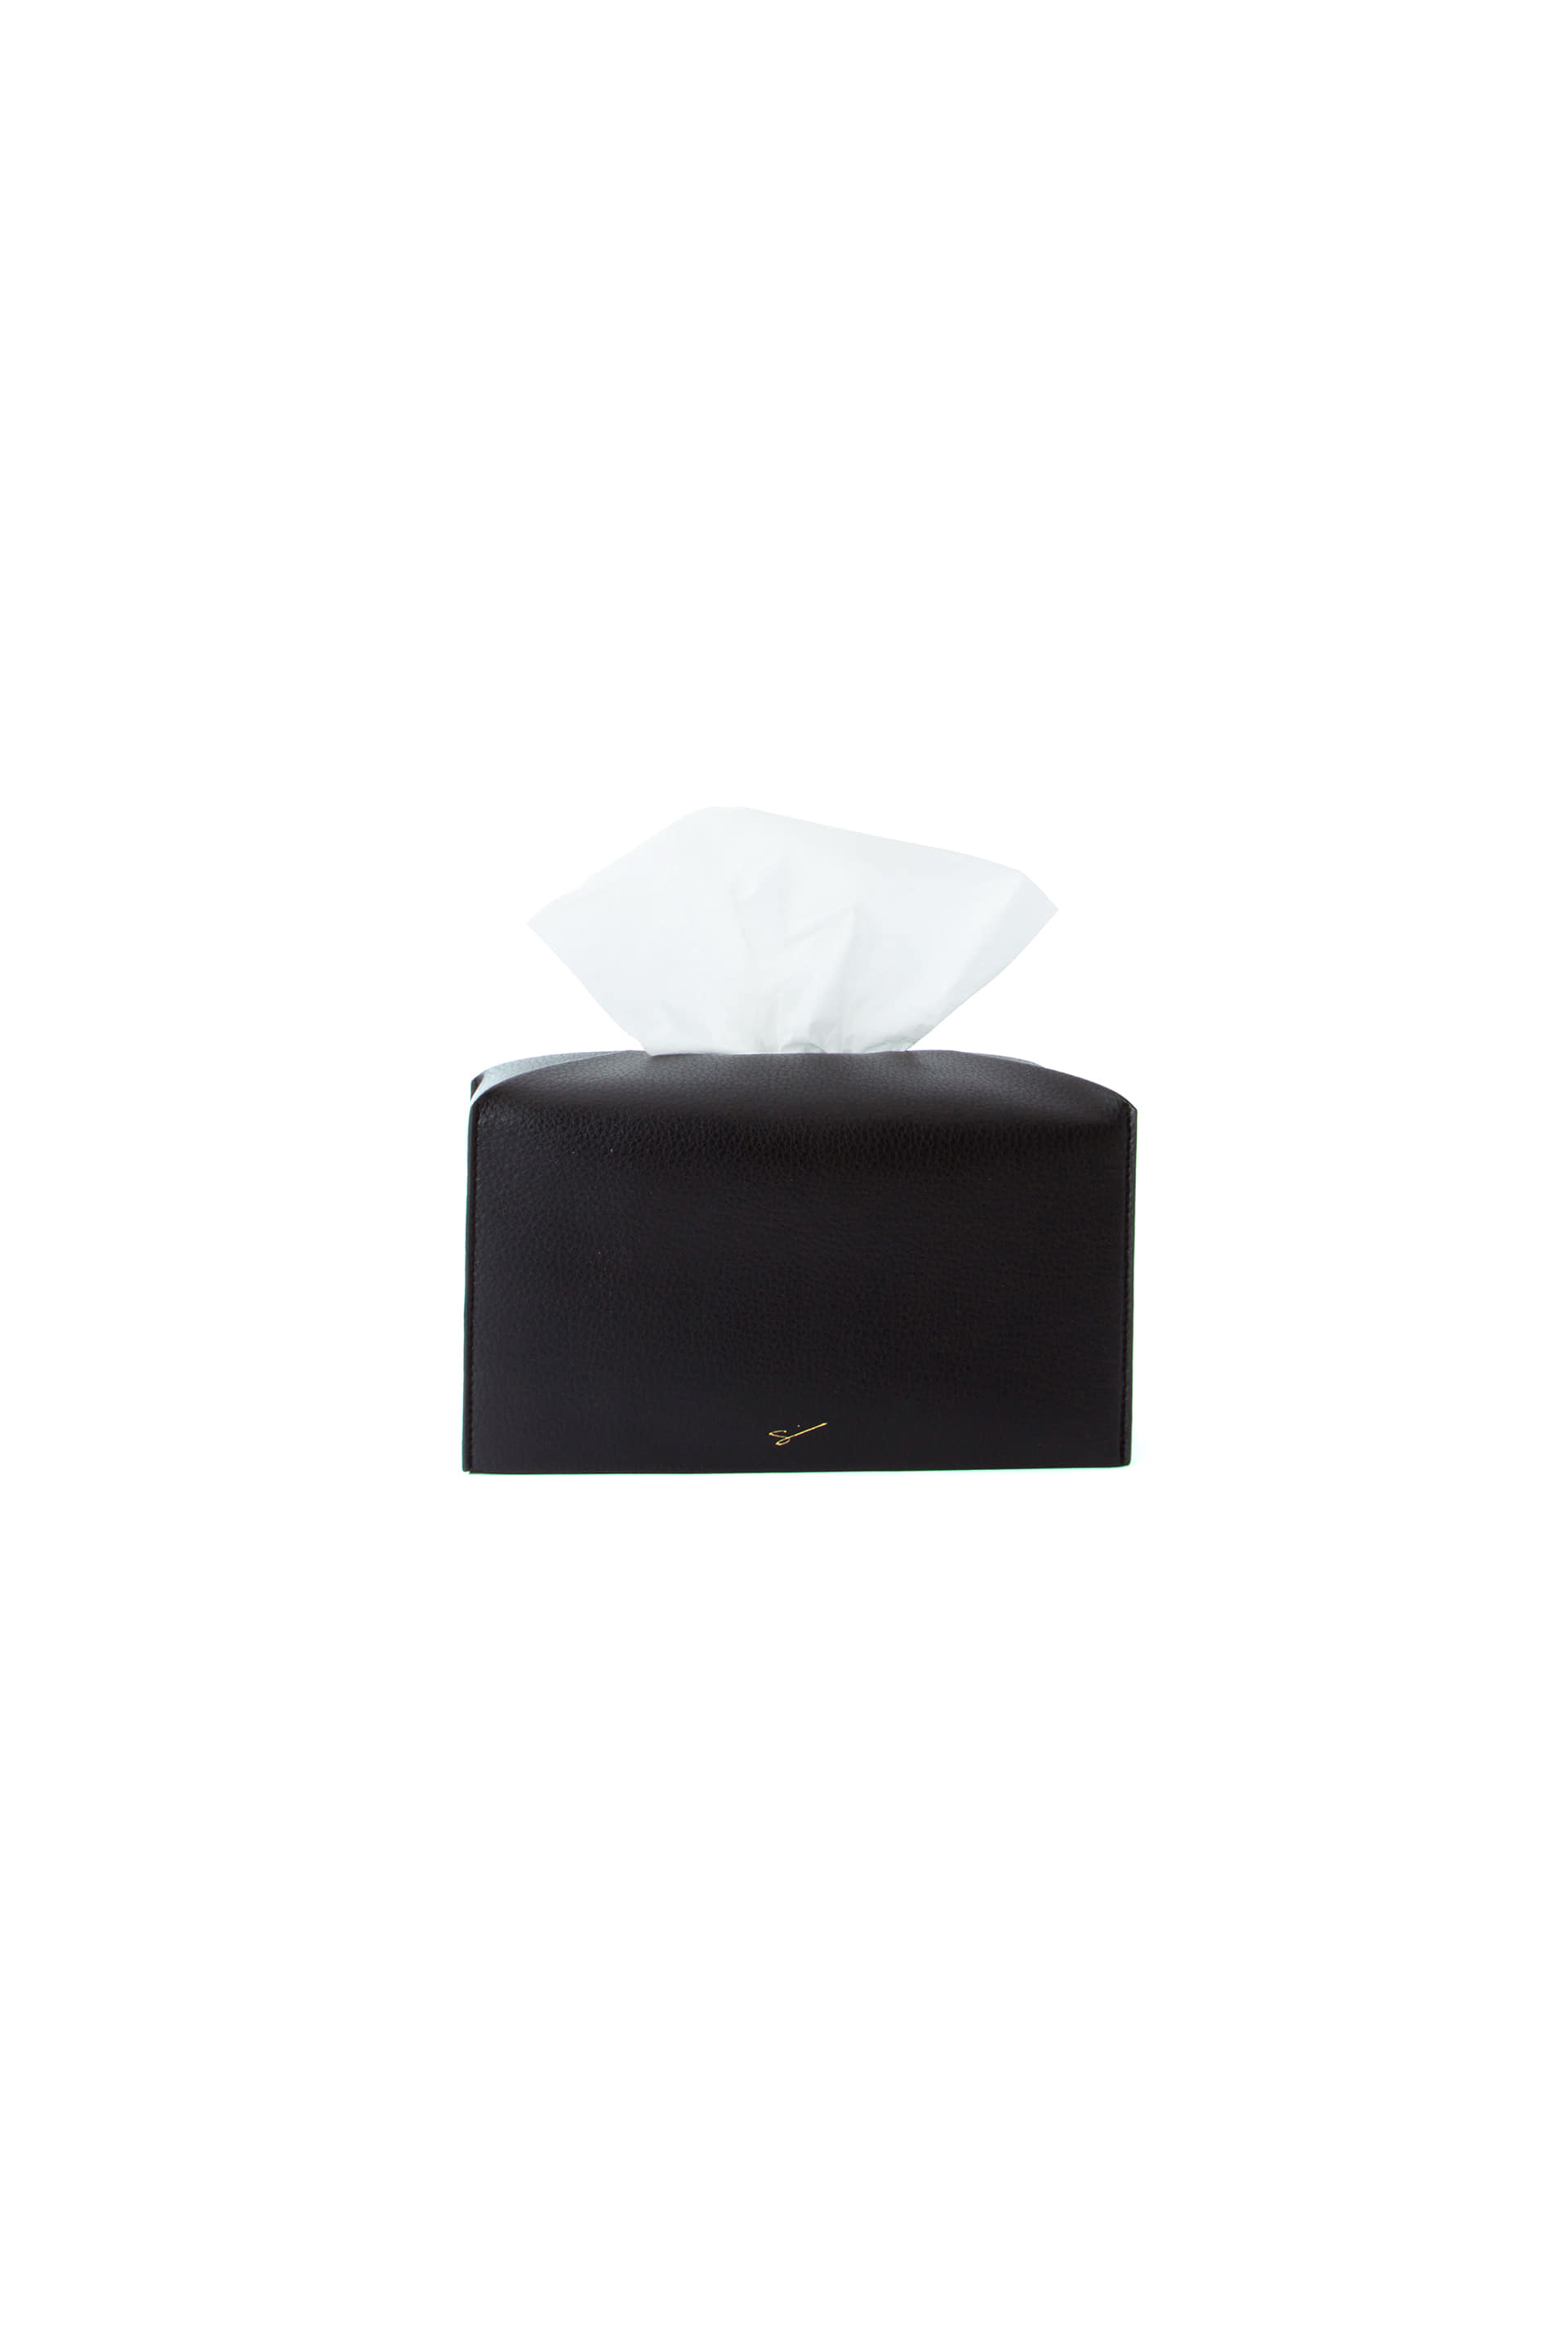 TISSUE CASE L 22 Black